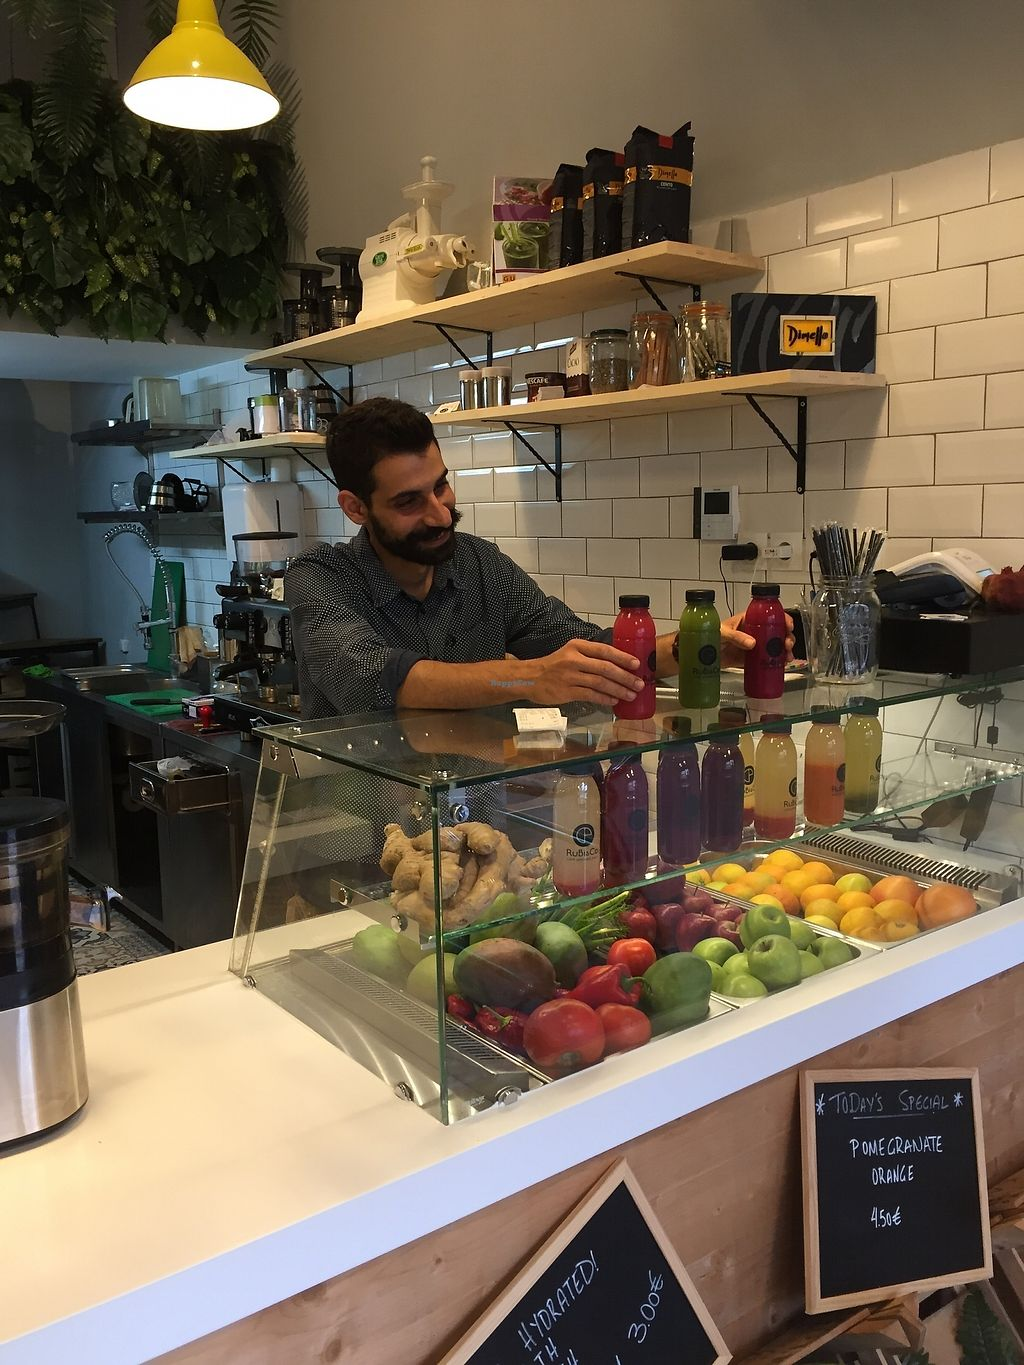 """Photo of RuBisCo  by <a href=""""/members/profile/RuBisCo"""">RuBisCo</a> <br/>Fresh, raw cold-pressed juices make you happy! <br/> July 26, 2017  - <a href='/contact/abuse/image/92117/284978'>Report</a>"""